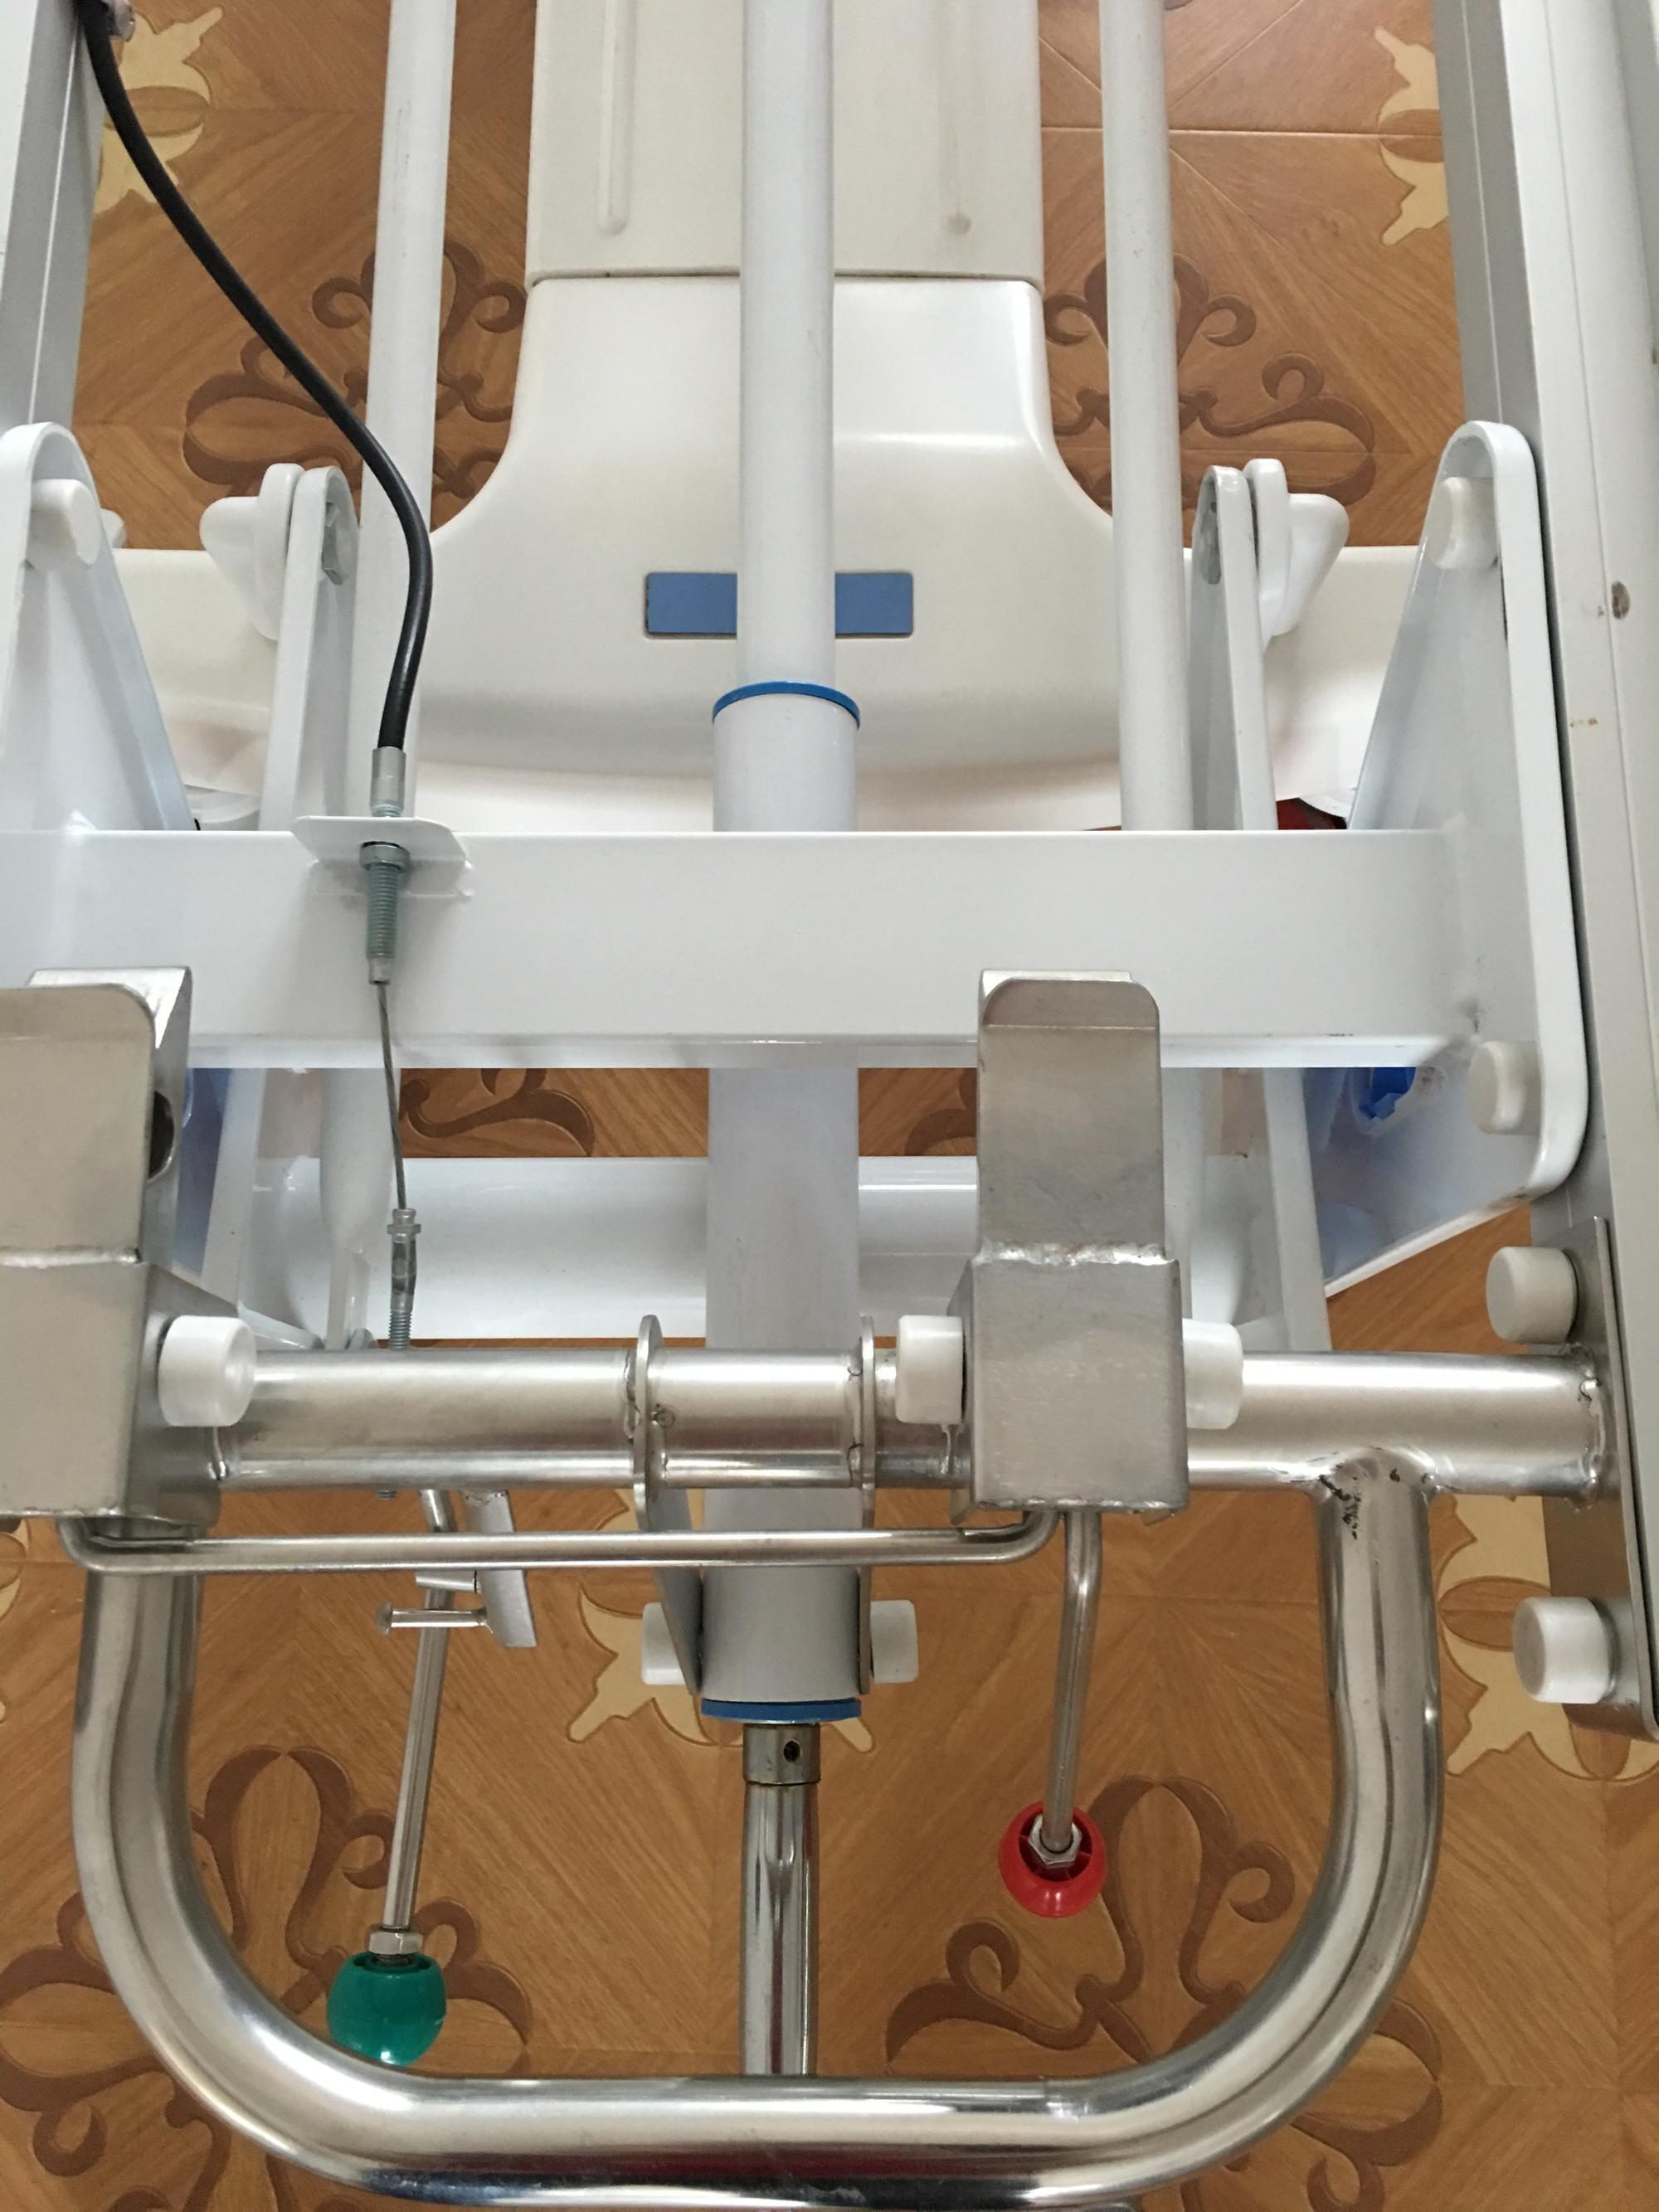 AC-ST010 Connecting Stretcher For operation room and patient transport stretcher